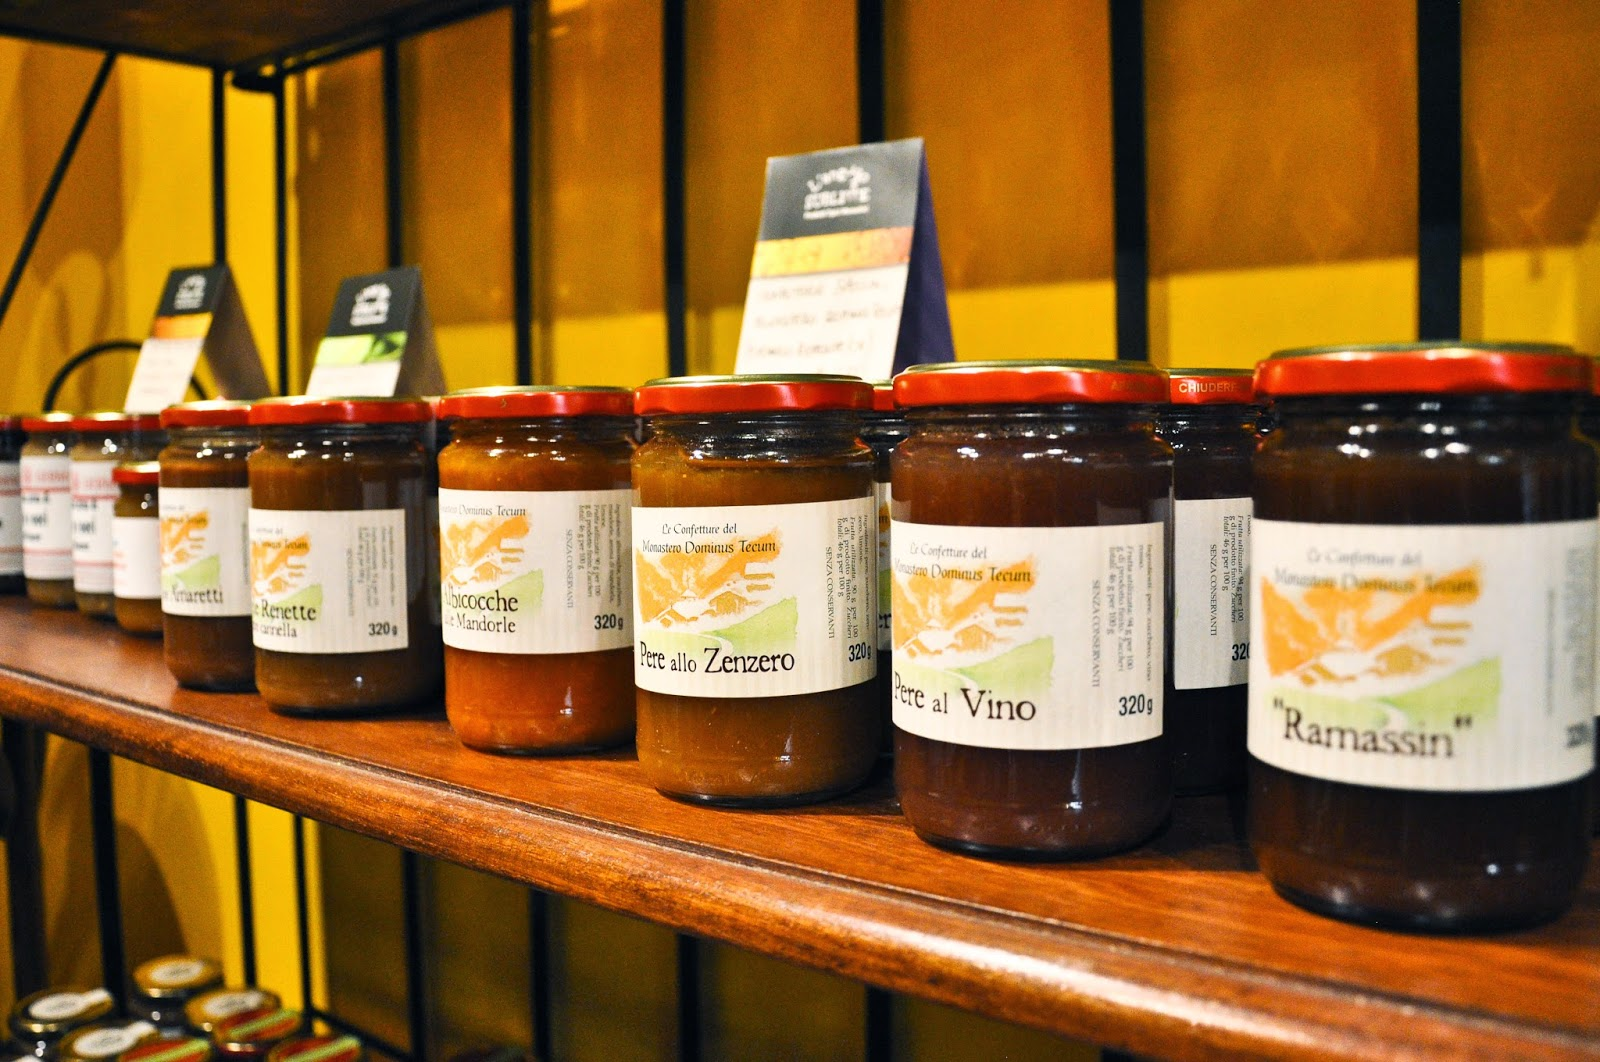 Chutneys and jams sold by the L'Angolo Sublime - a charming shop in Vicenza selling artisan products made in Italian monasteries